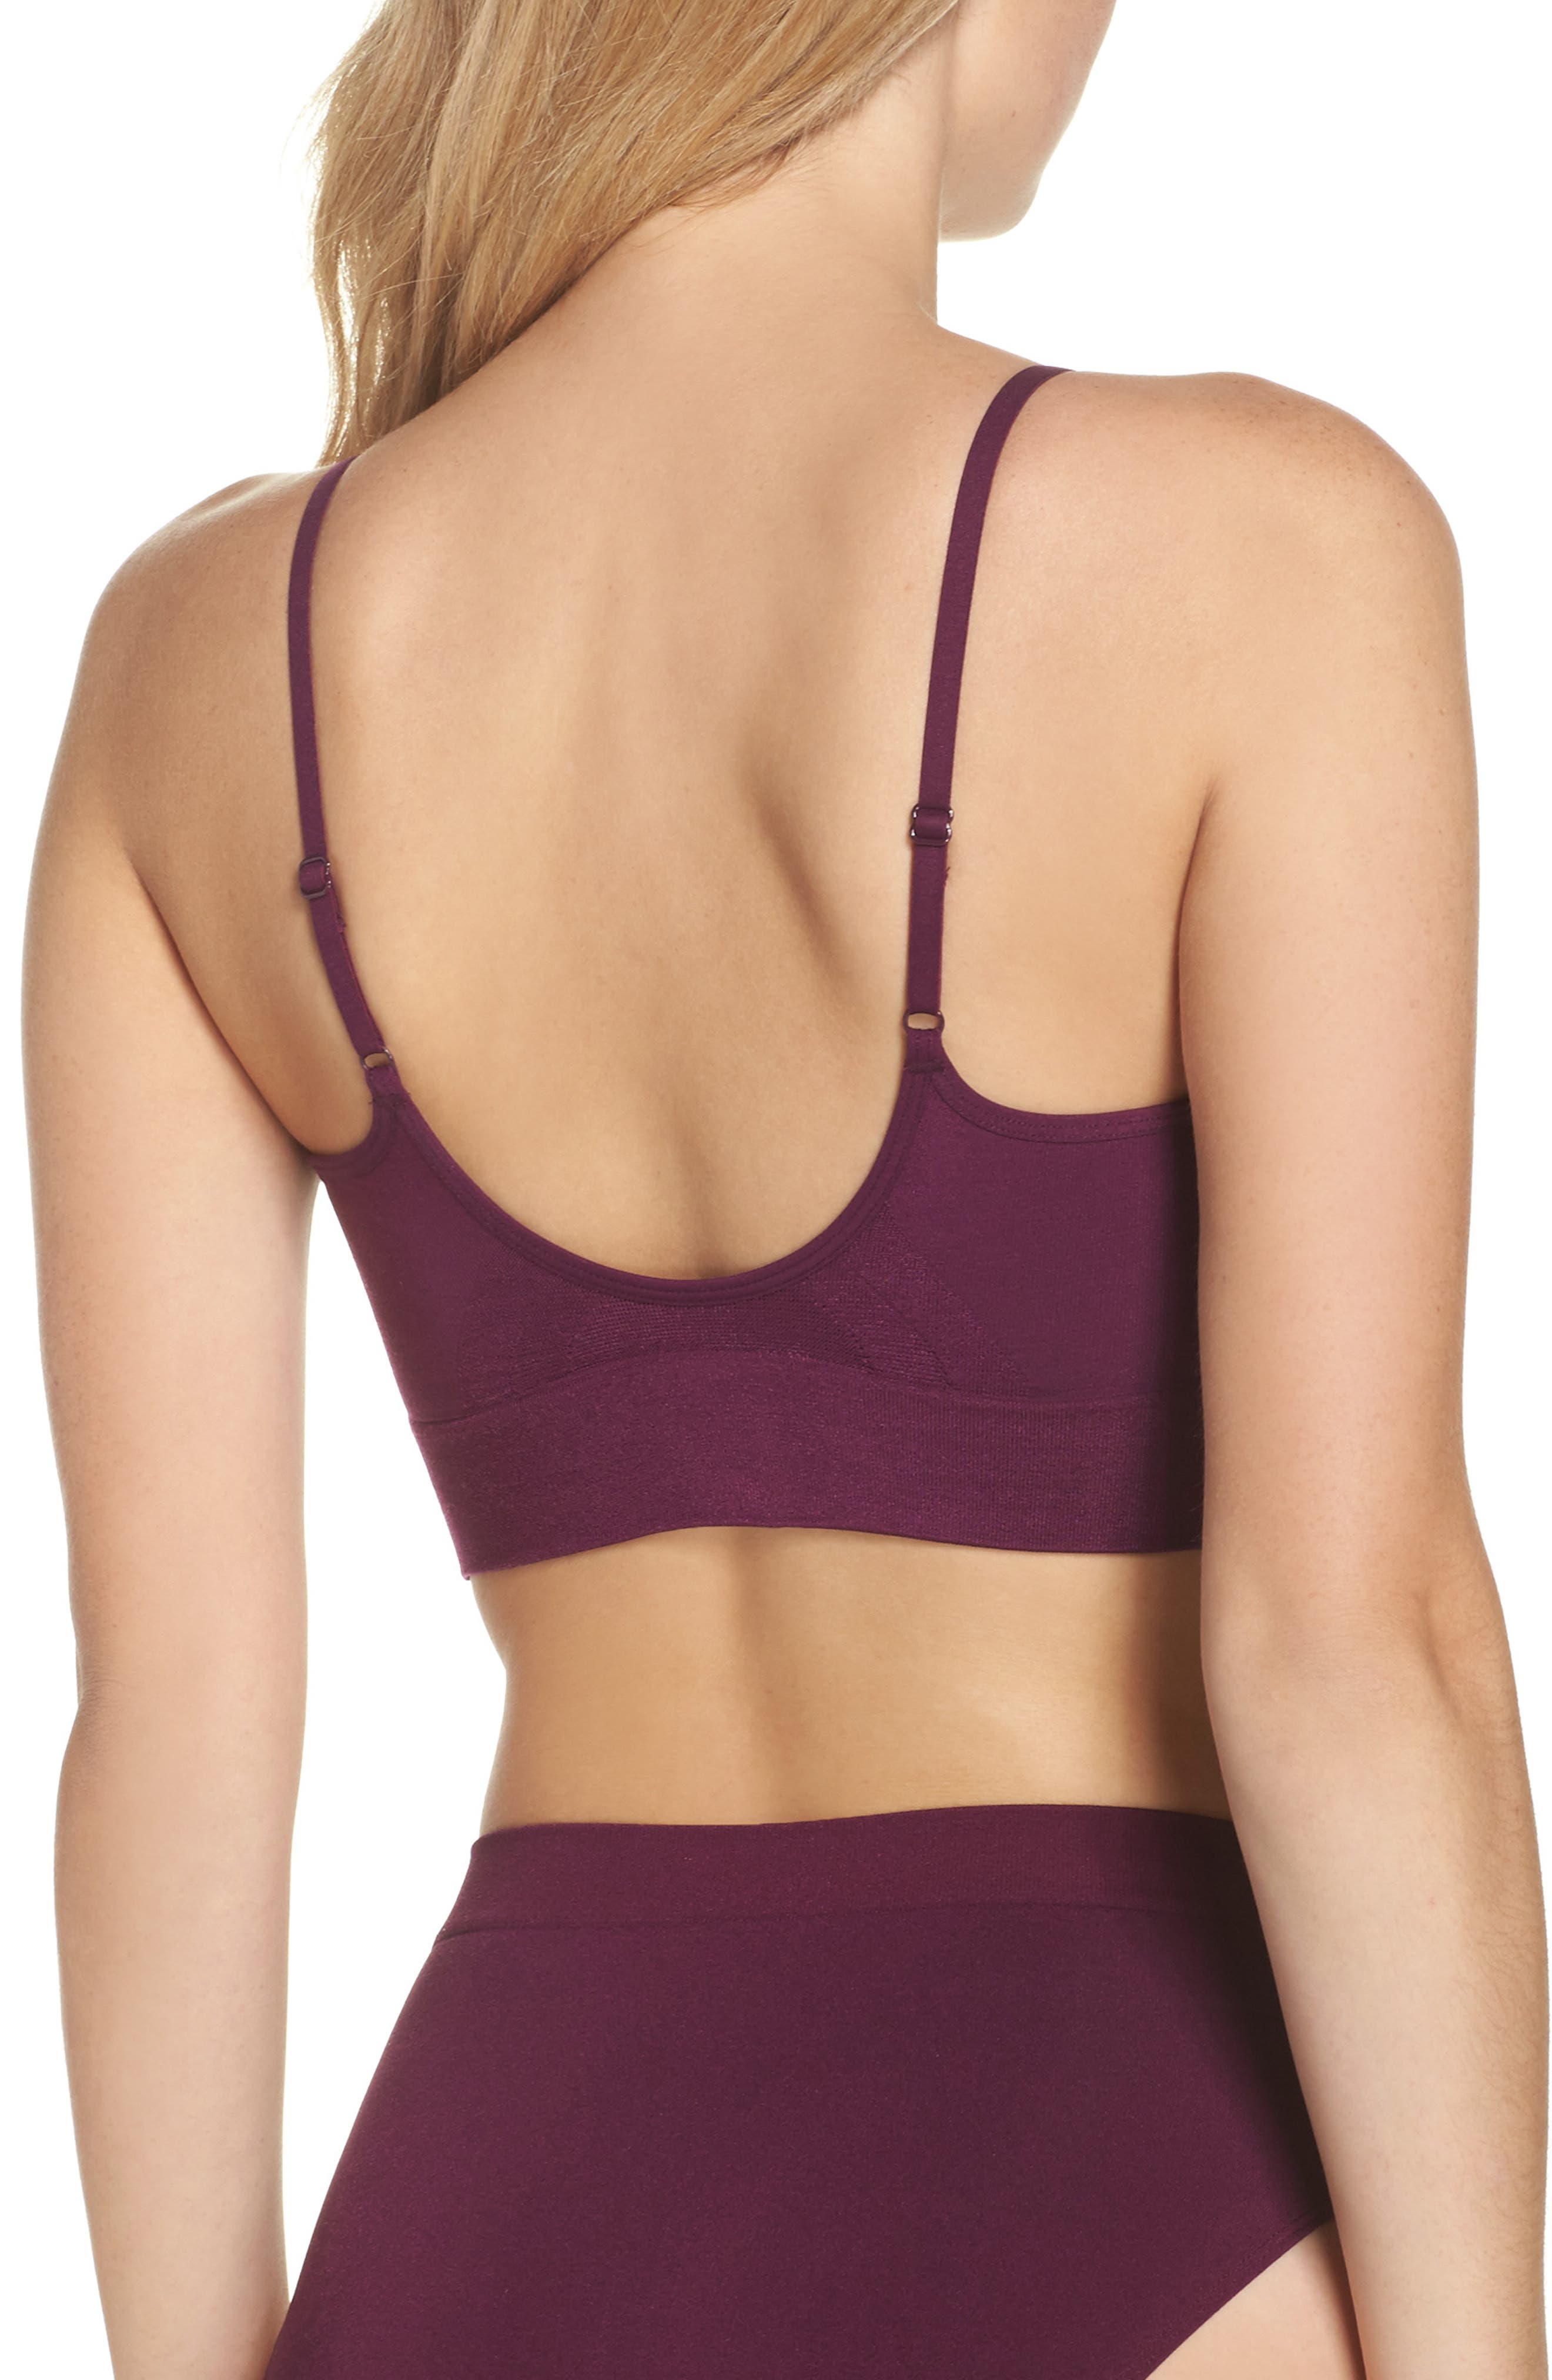 Alternate Image 2  - Wacoal B Smooth Seamless Bralette